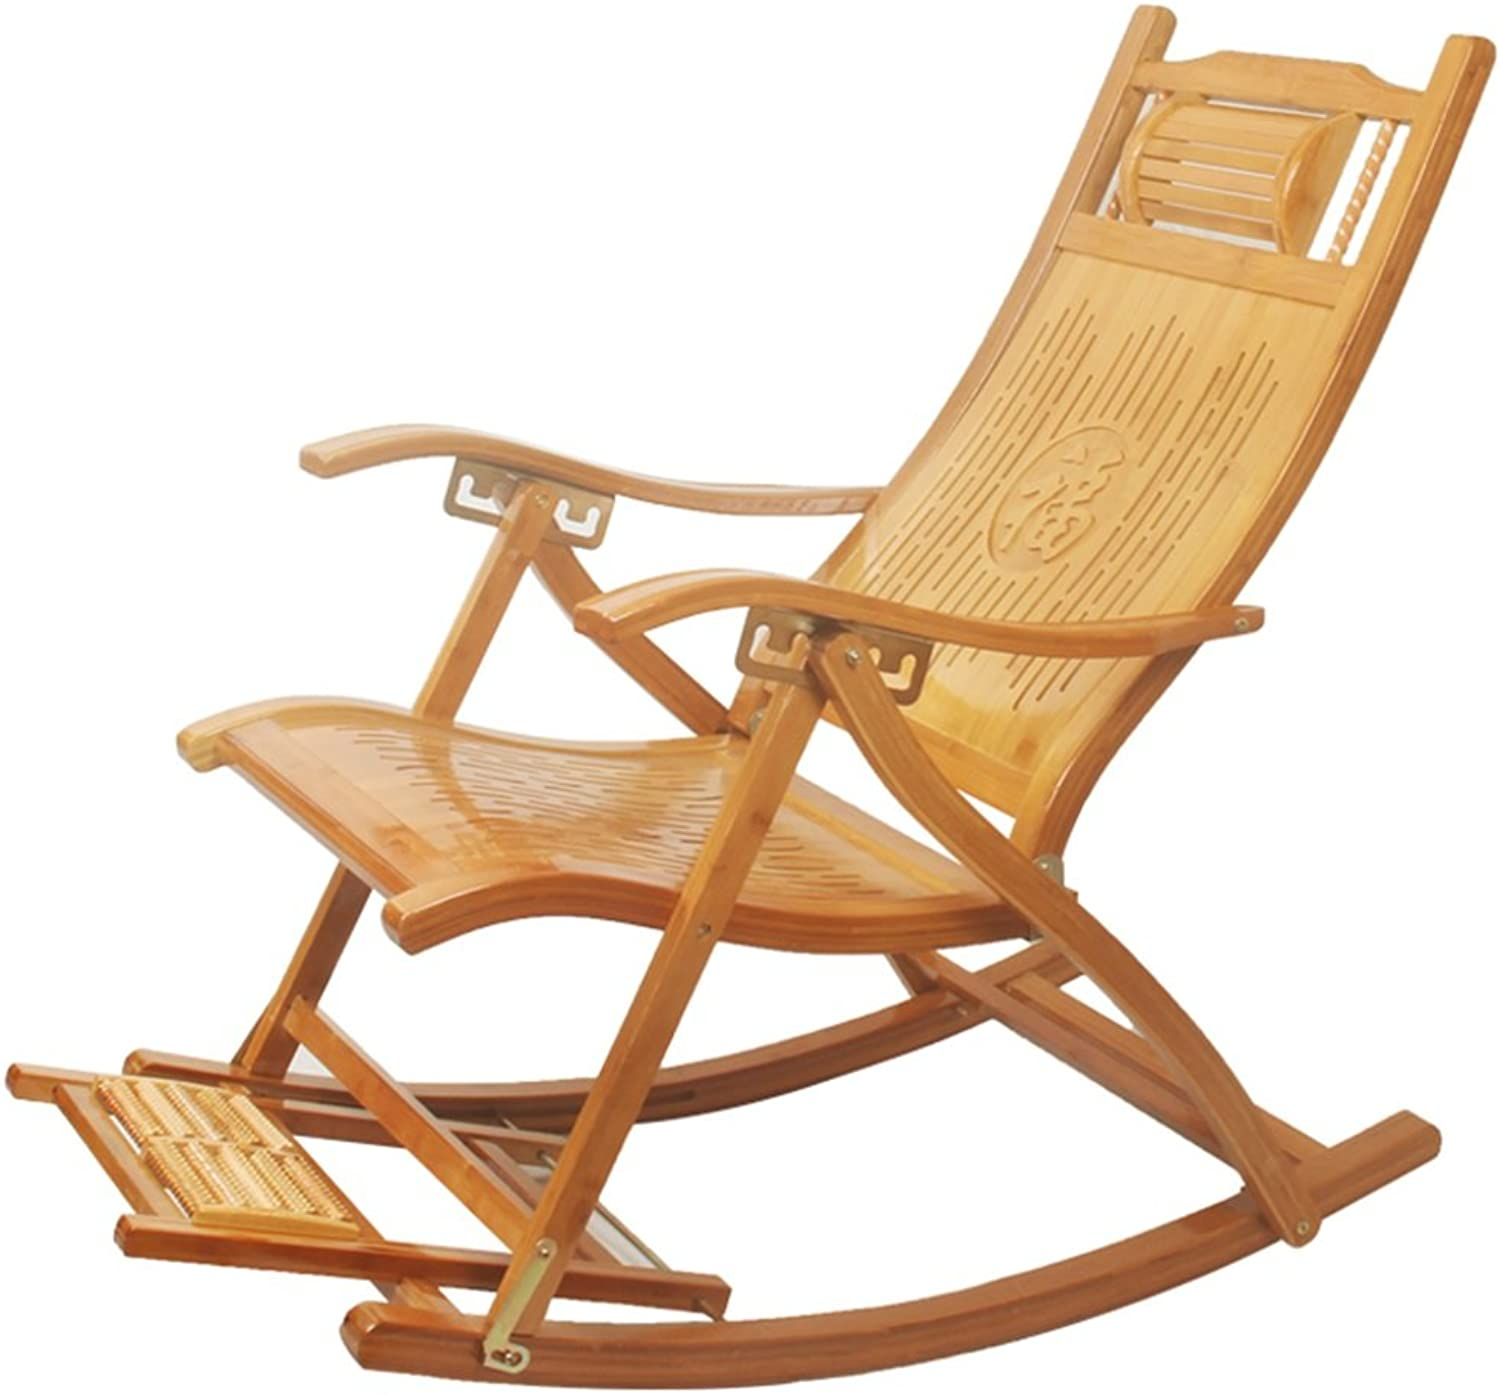 Rocking Chair Adult Balcony Folding Chair Elderly Leisure Chair Office Lunch Lounge Chair Lazy Chair (color   Wood color, Size   95  75  62cm)